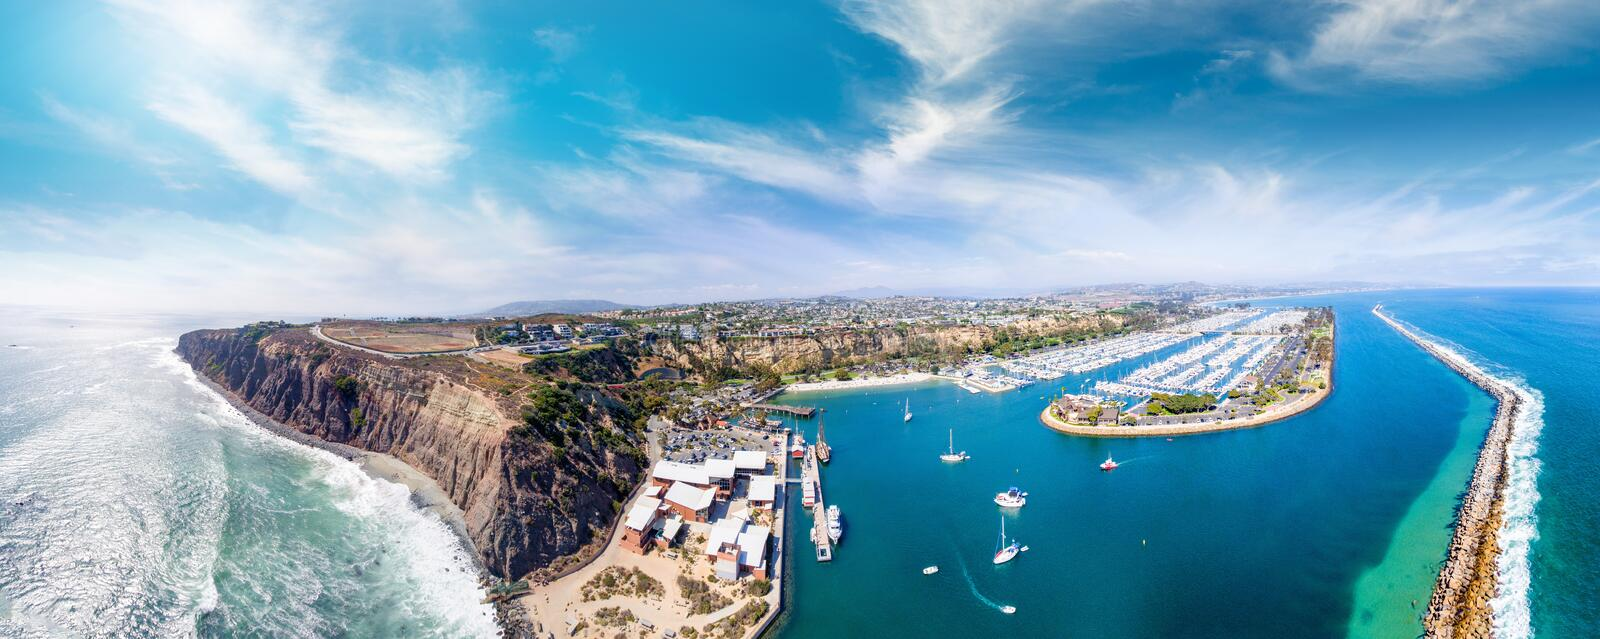 Dana Point, California. Aerial view of beautiful coastline royalty free stock photos